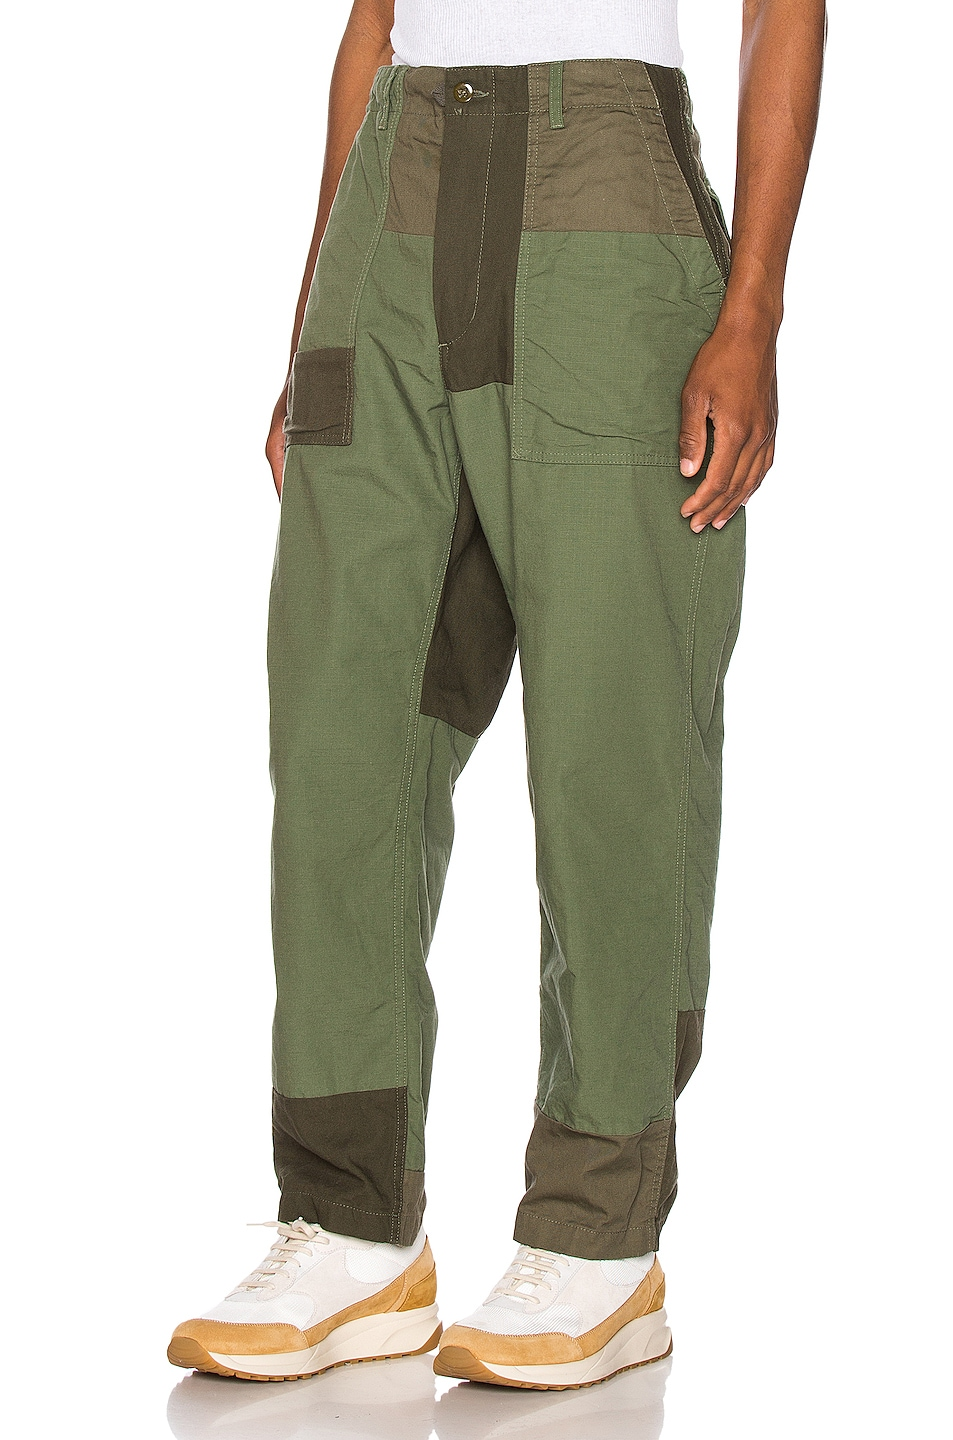 Image 3 of Engineered Garments Fatigue Pant Cotton Ripstop in Olive